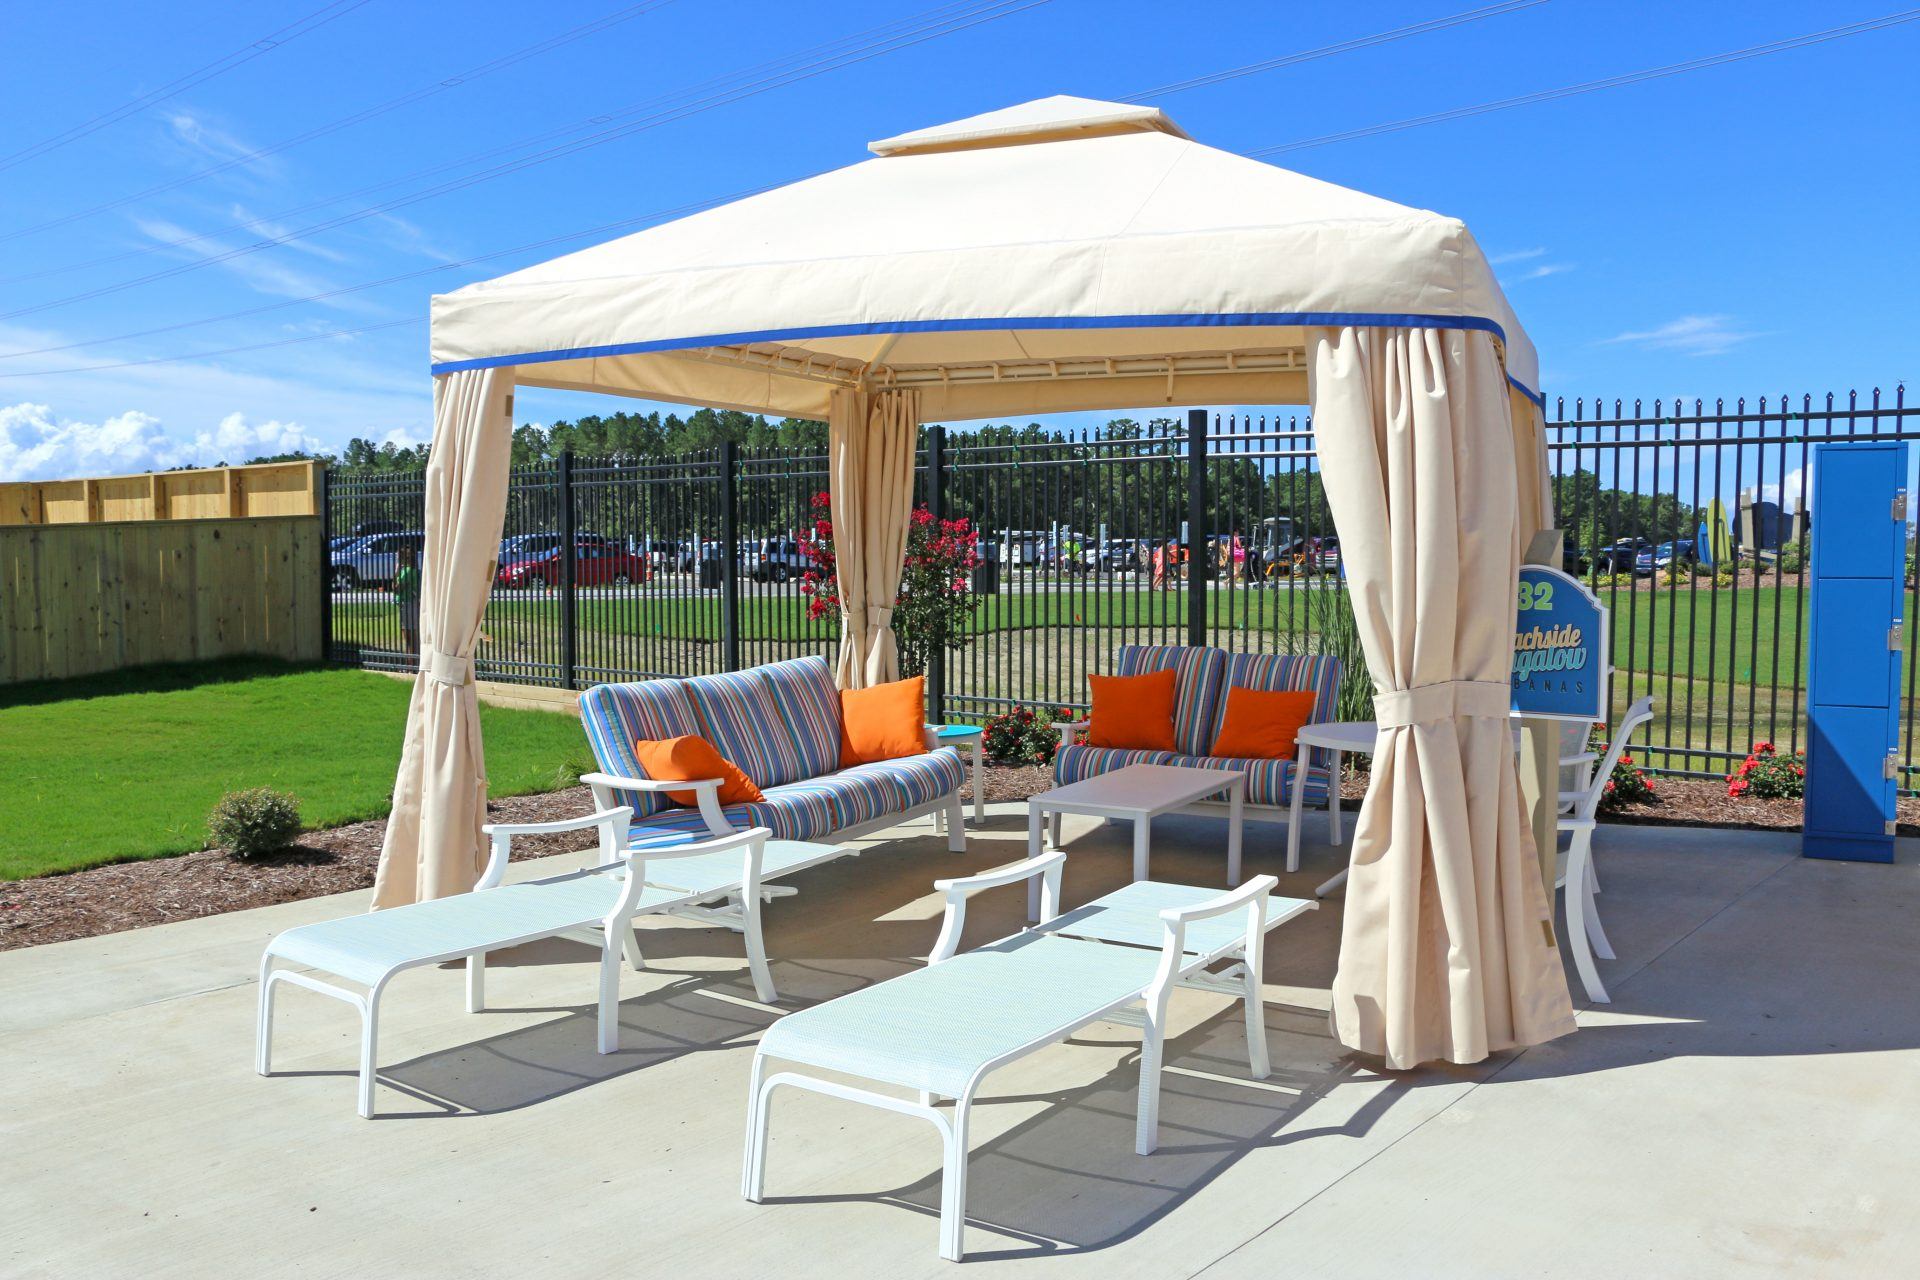 cabana and lounge area at water park